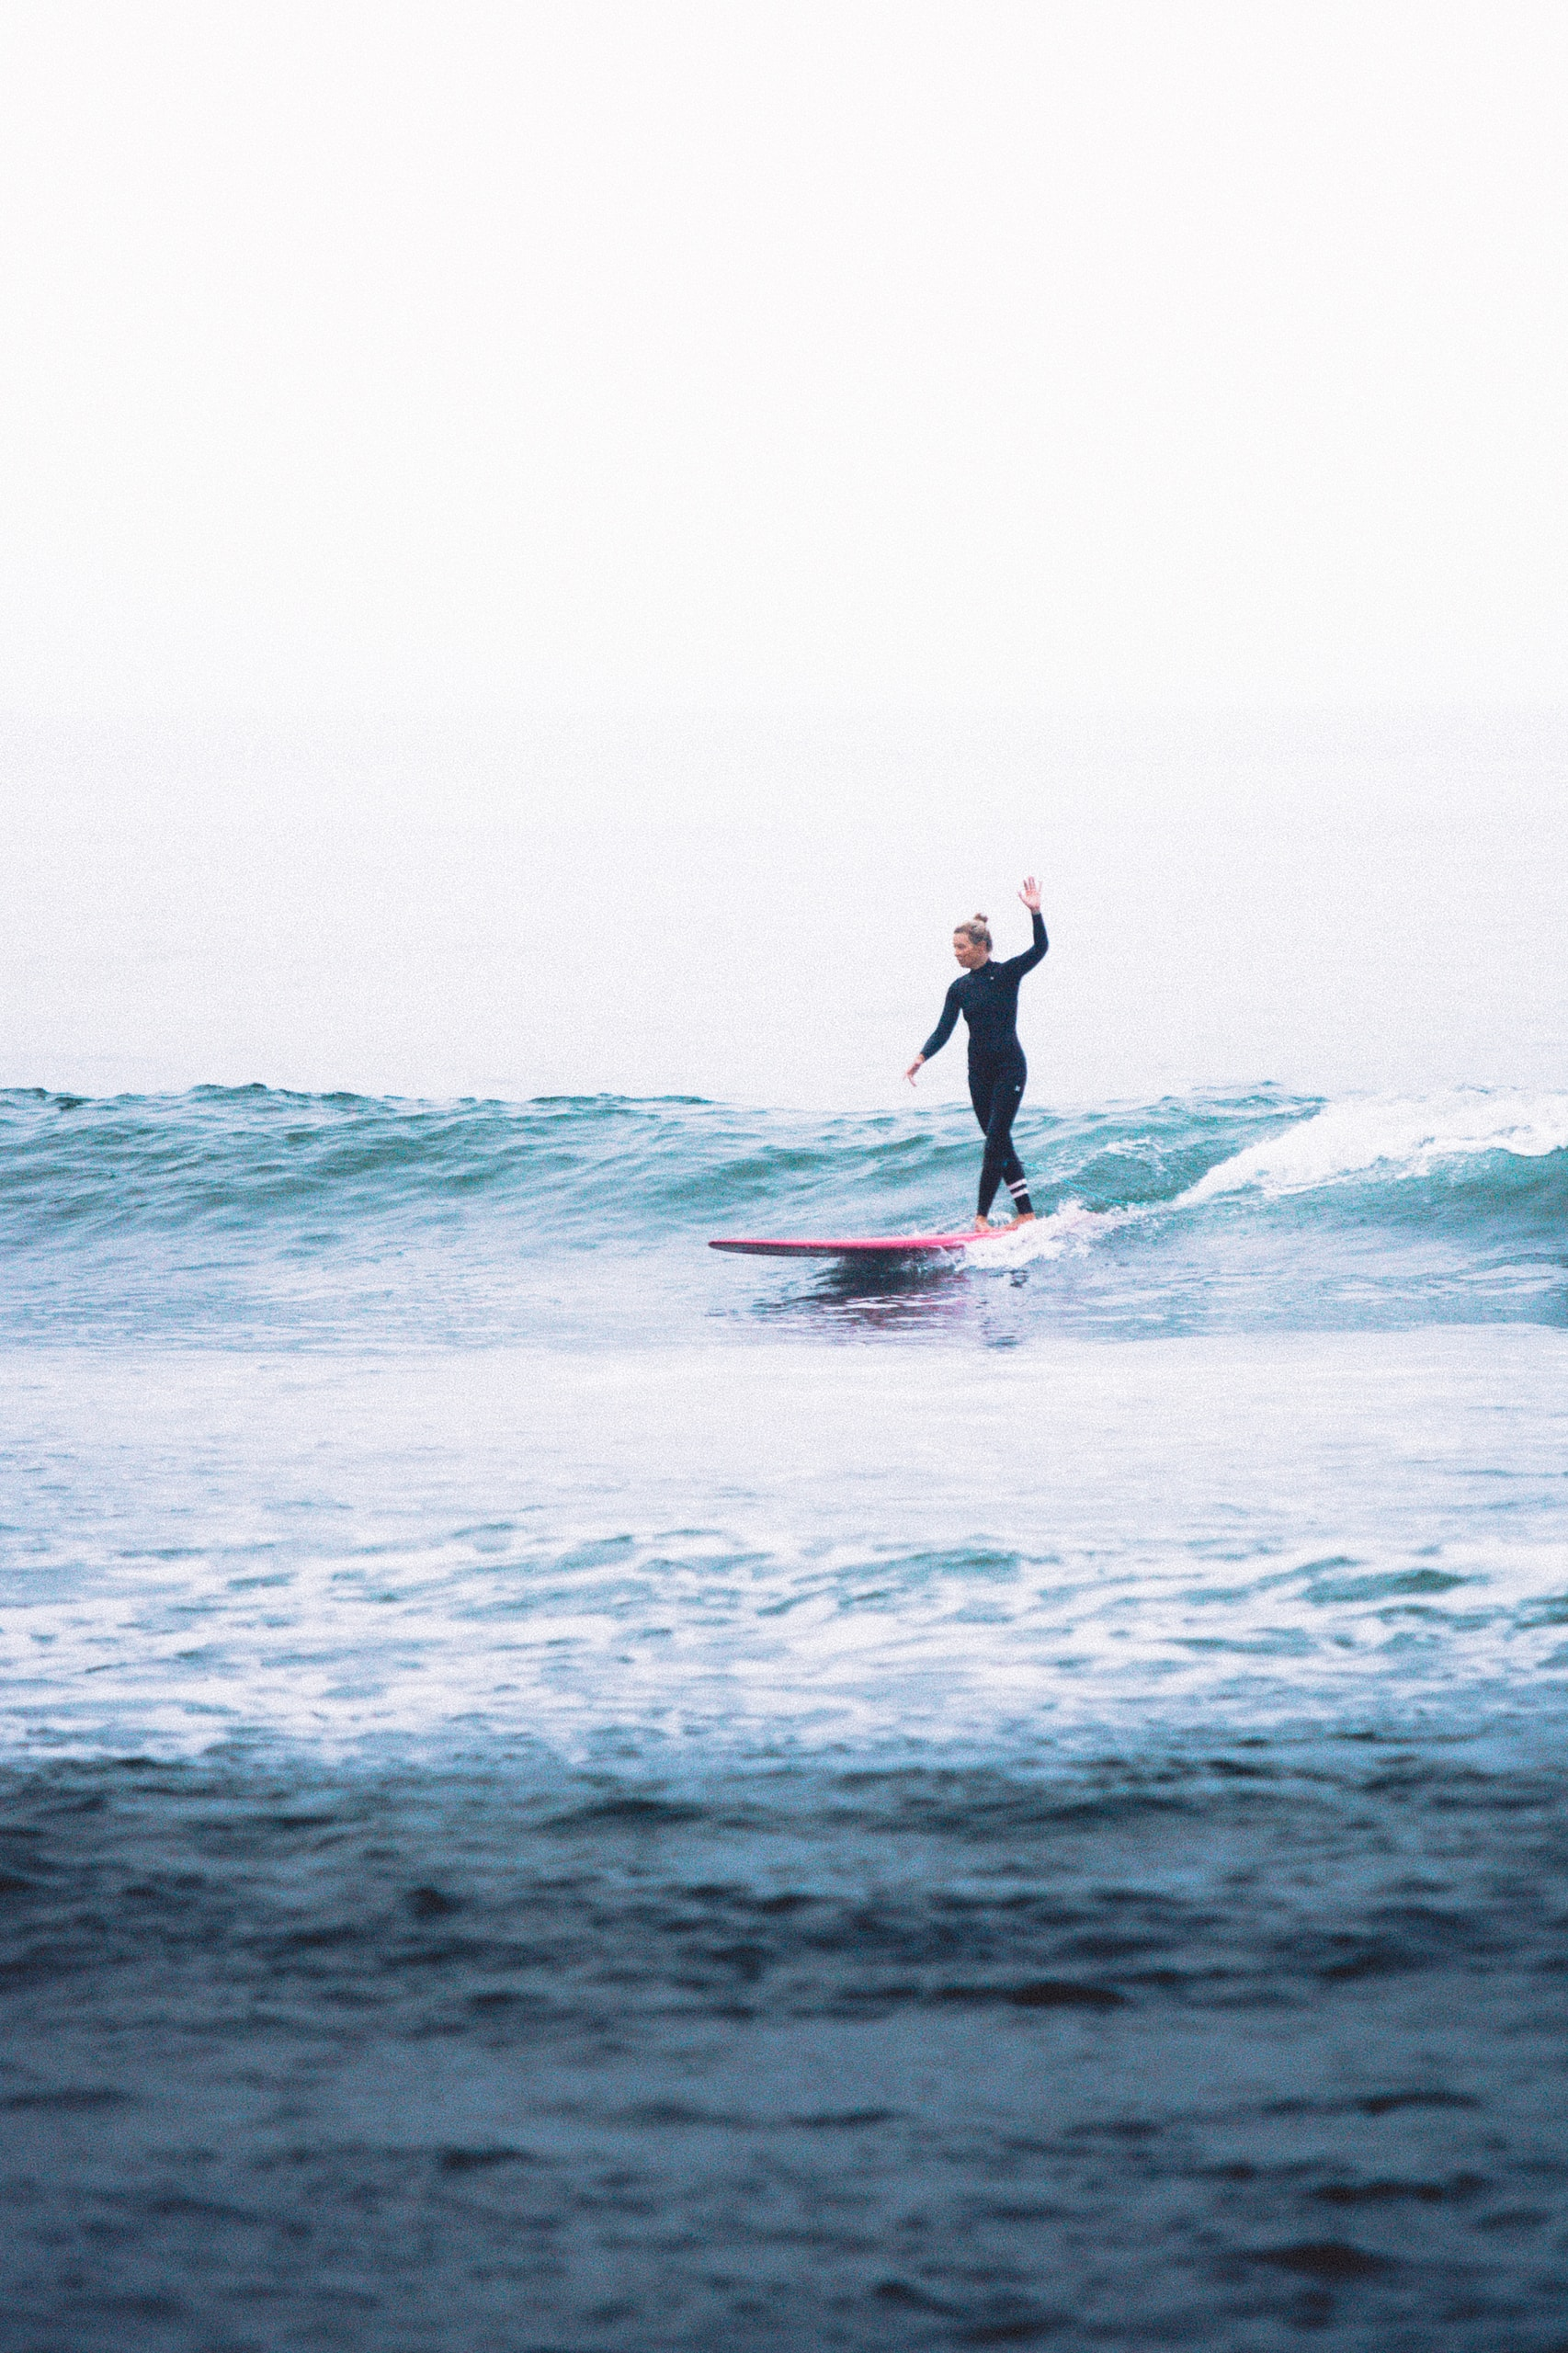 woman surfing on waves during daytime